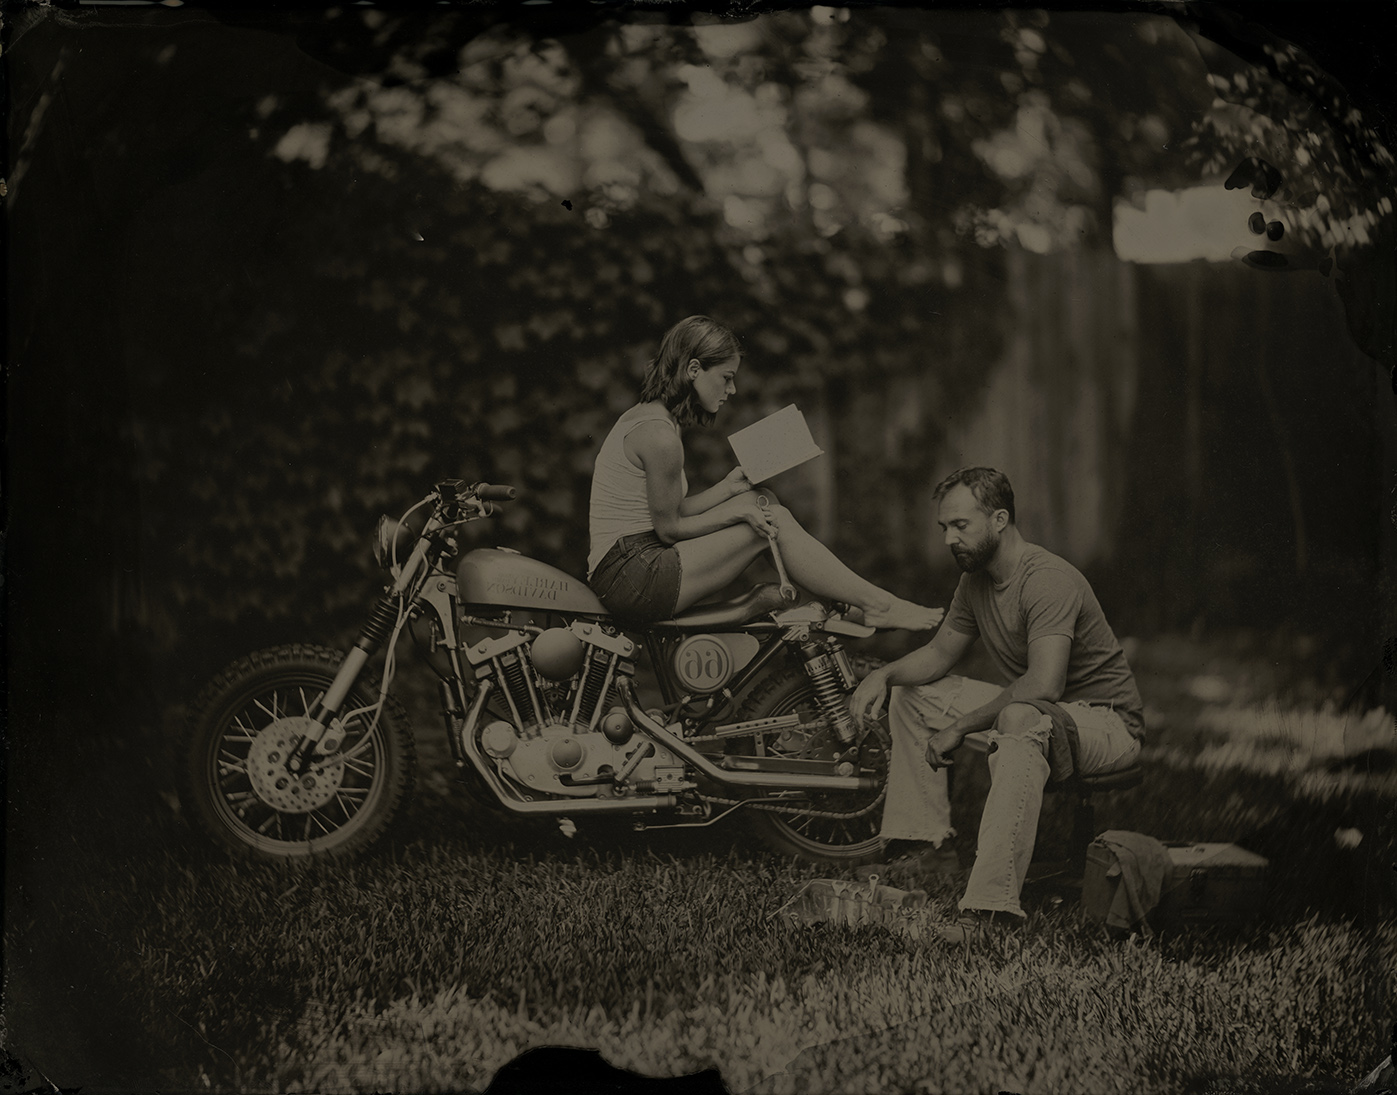 Relationship - Tintypes